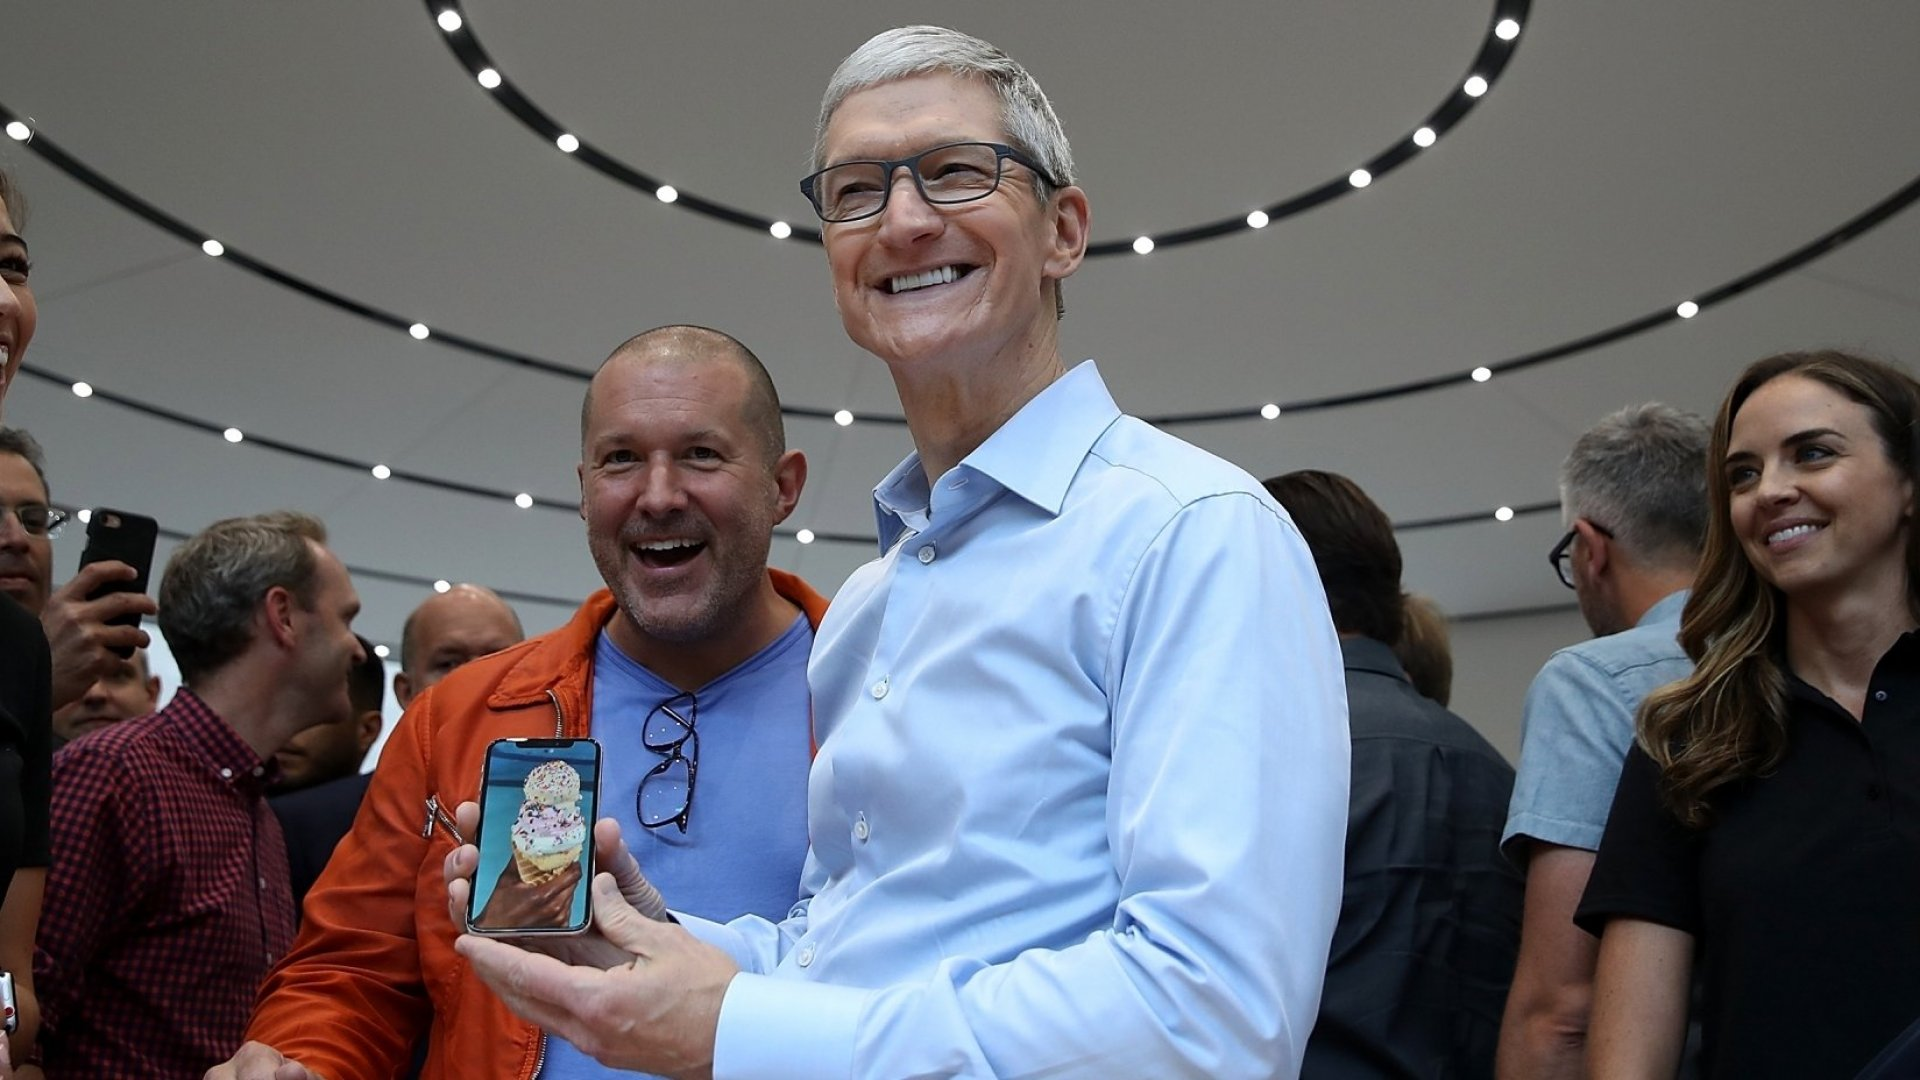 Apple Surpasses Expectations, Revenue Soars to $52.6 Billion in Q4 Earnings Results